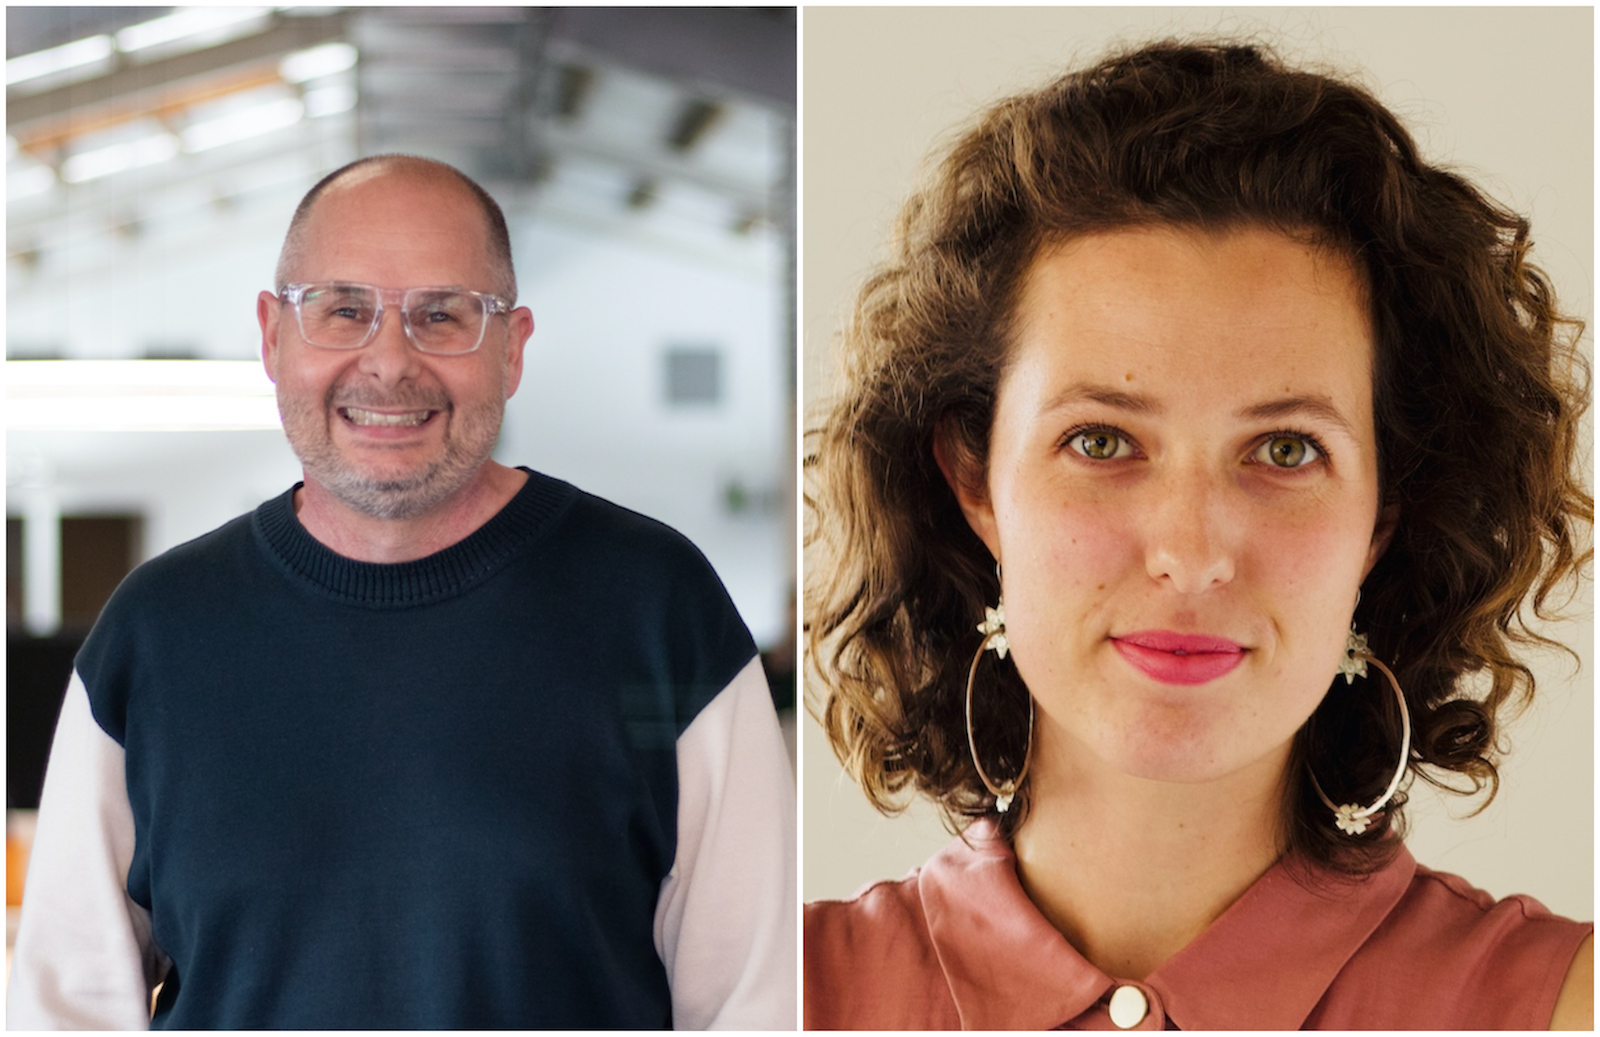 Uno Loco appoints Mark Benseman to creative director at Hula; Marela Glavaš joins as project manager key accounts